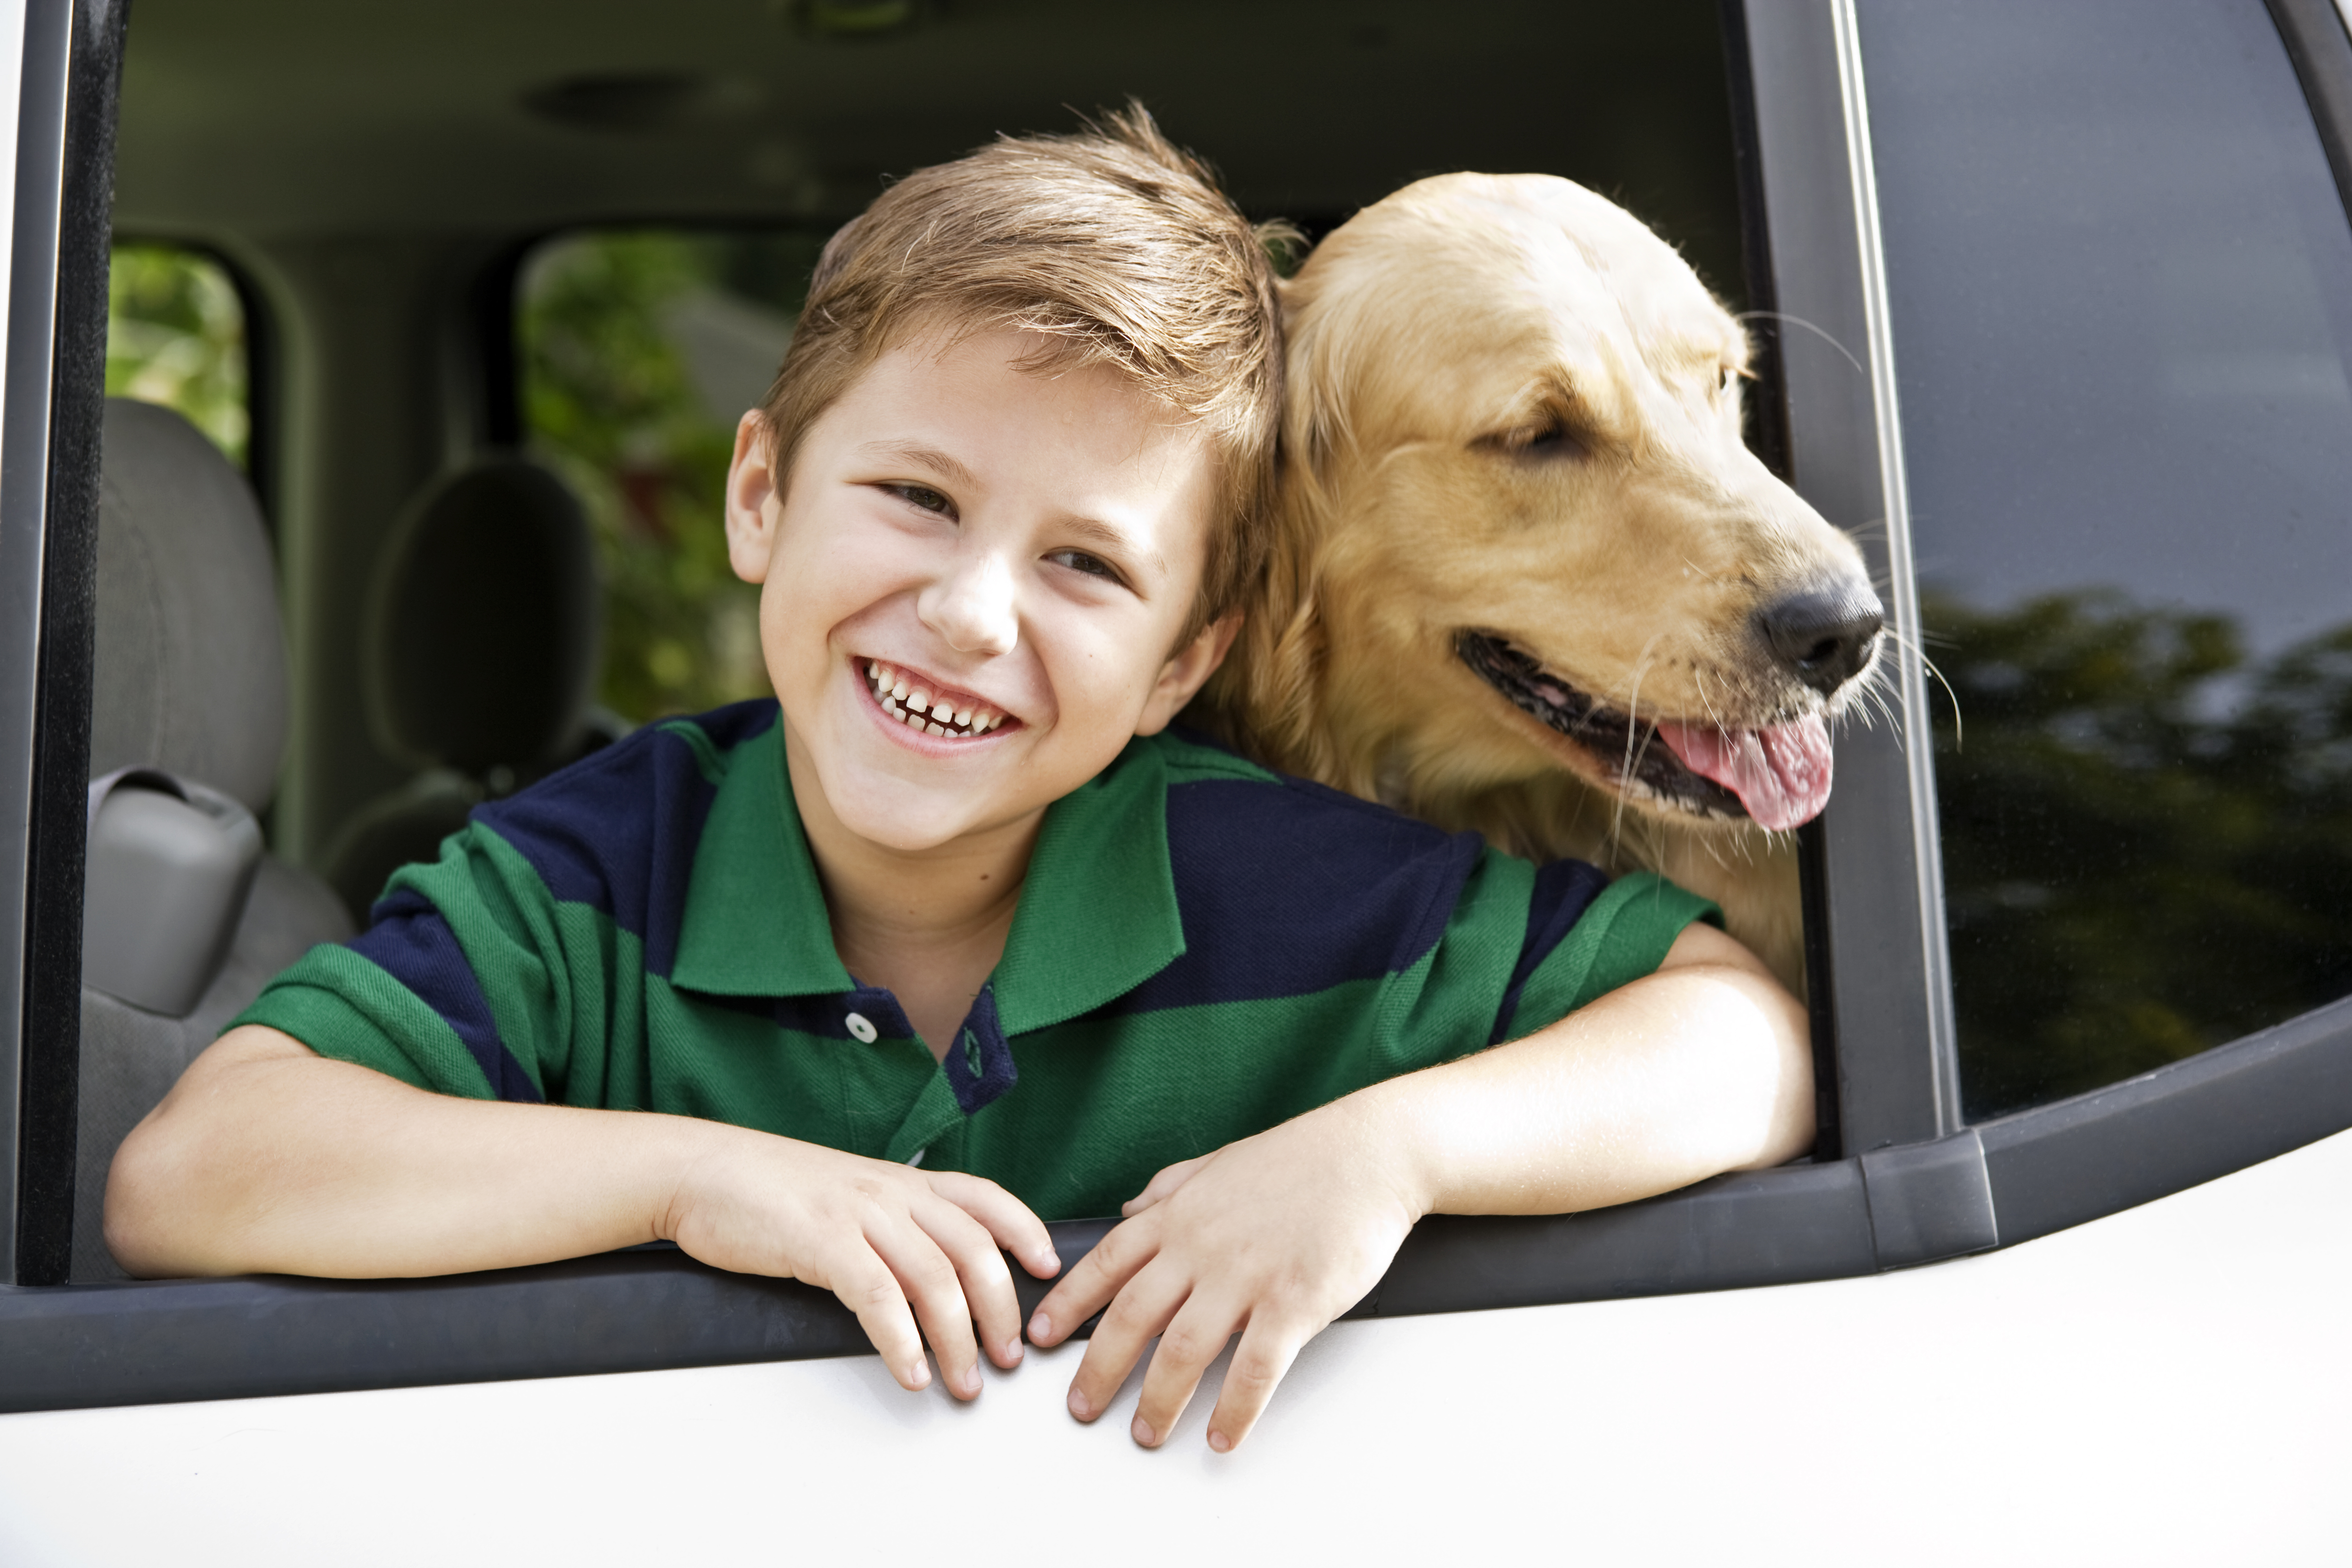 boy leaning out the car window with his dog